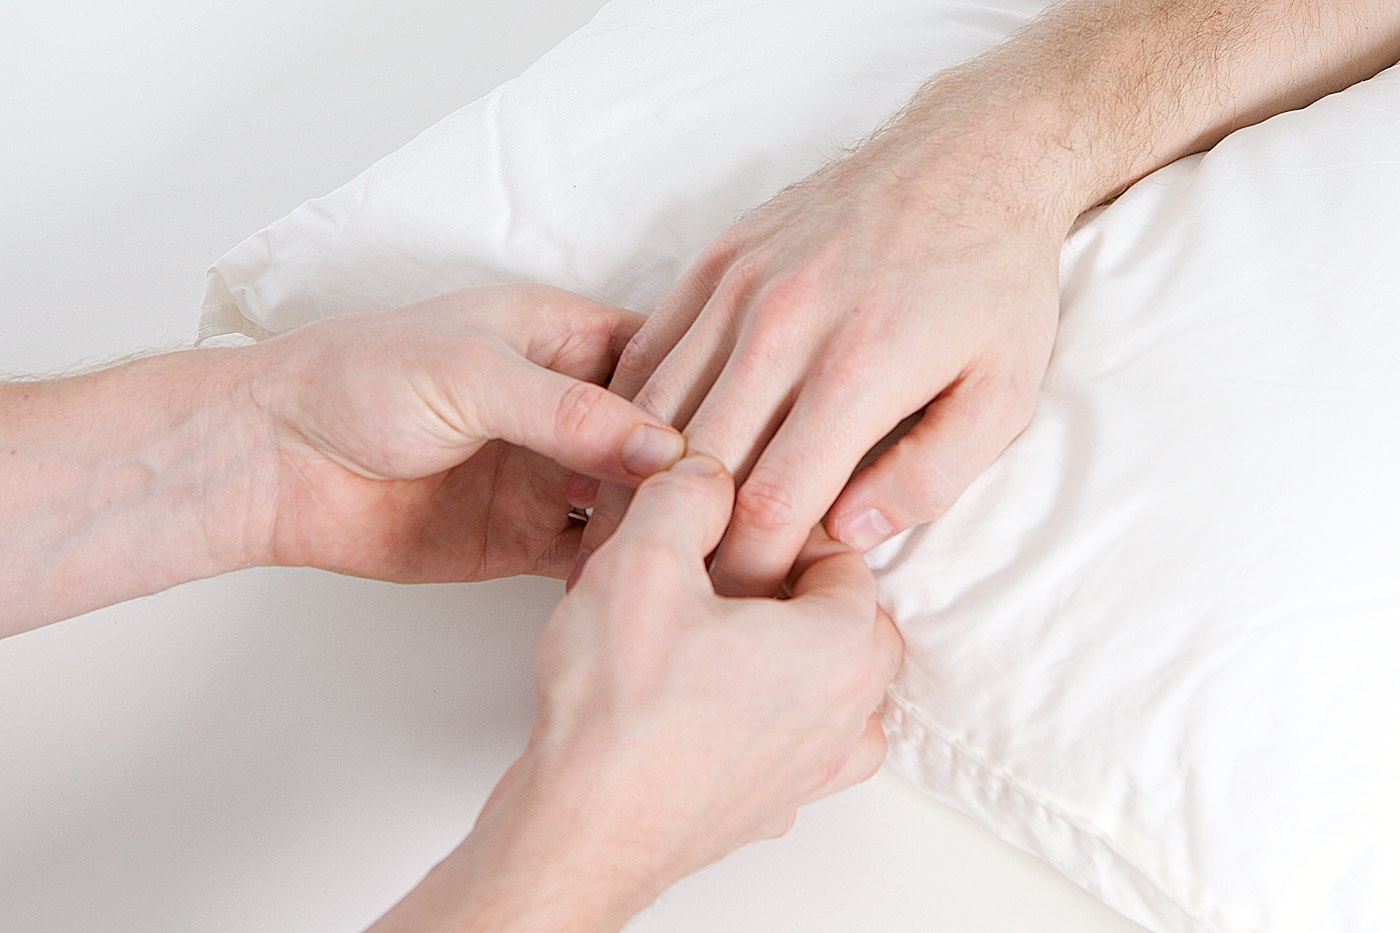 Interphalangeal joint palpation